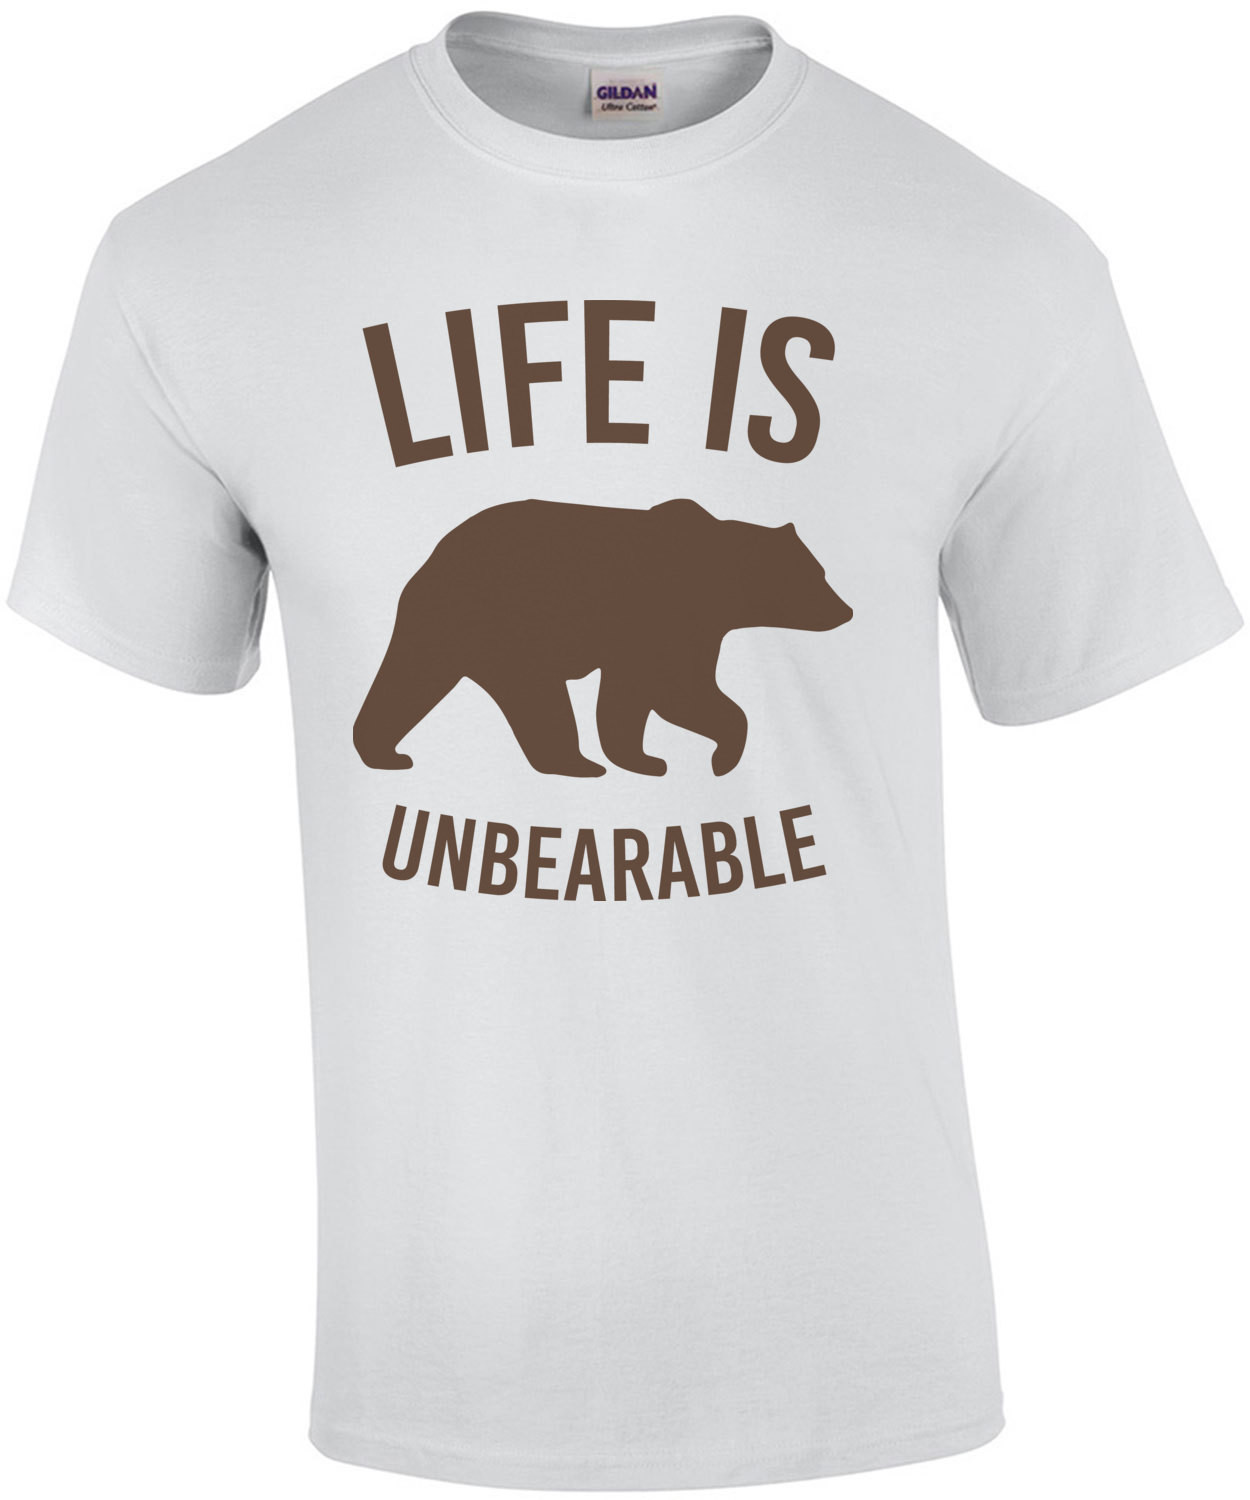 Life is unbearable - funny t-shirt